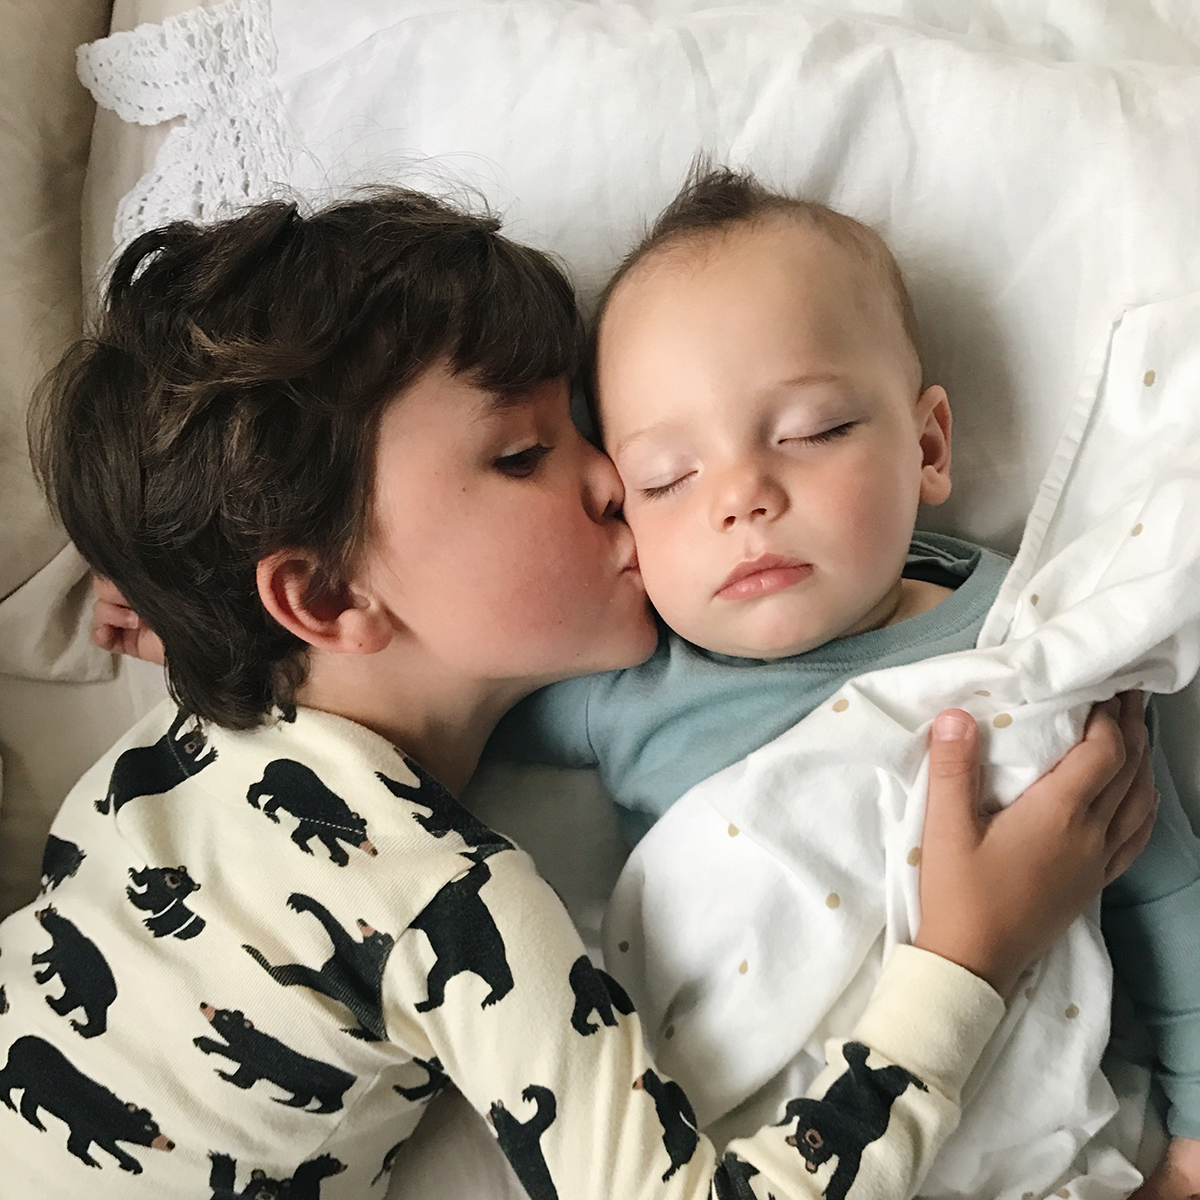 Little boy kissing his sleeping baby brother on the cheek